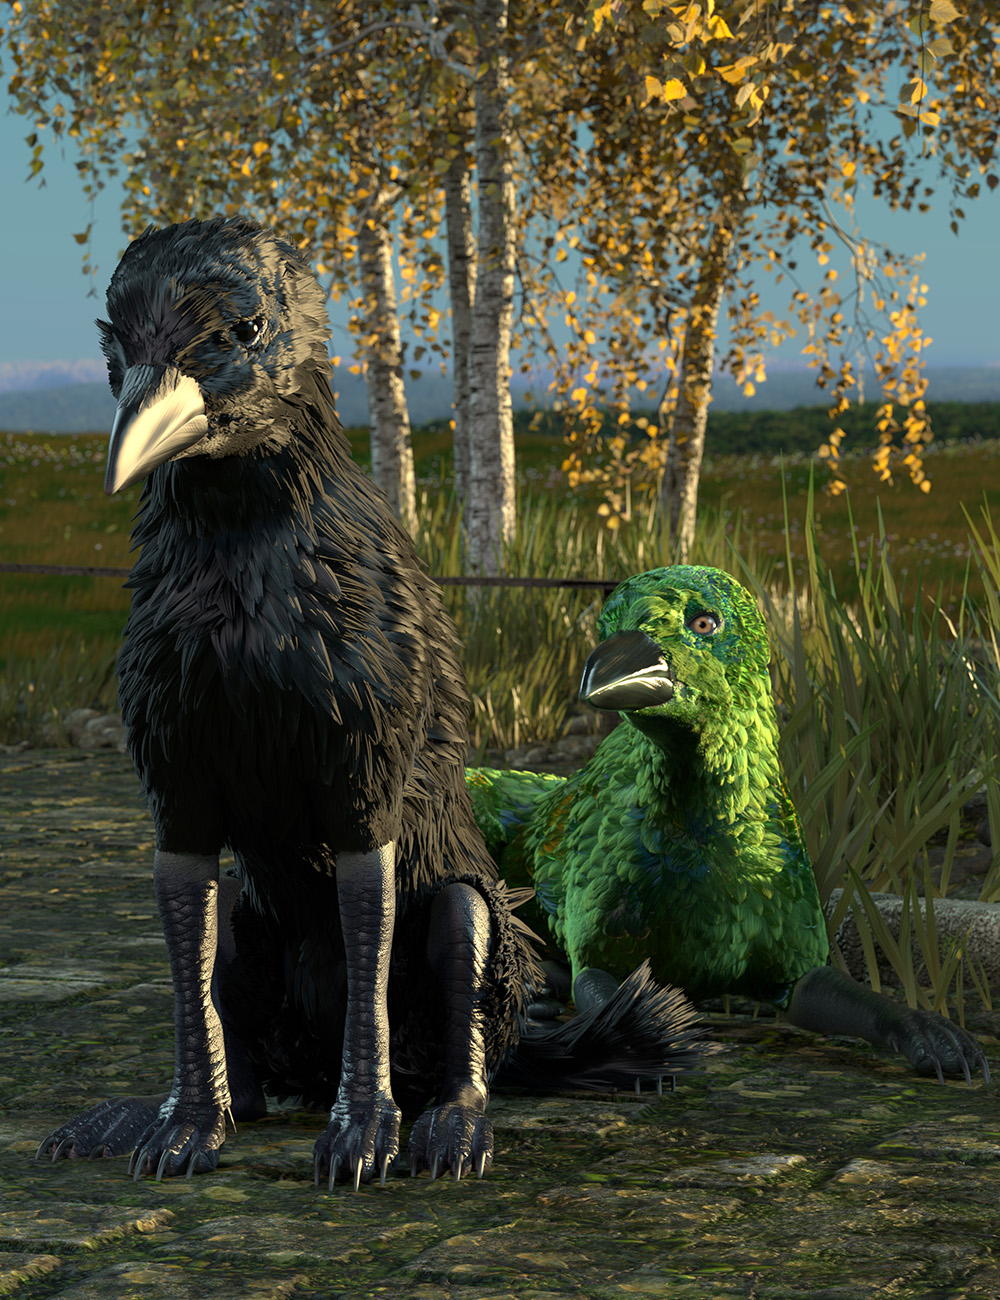 Crowulf for Daz Dog 8 by: Oso3D, 3D Models by Daz 3D